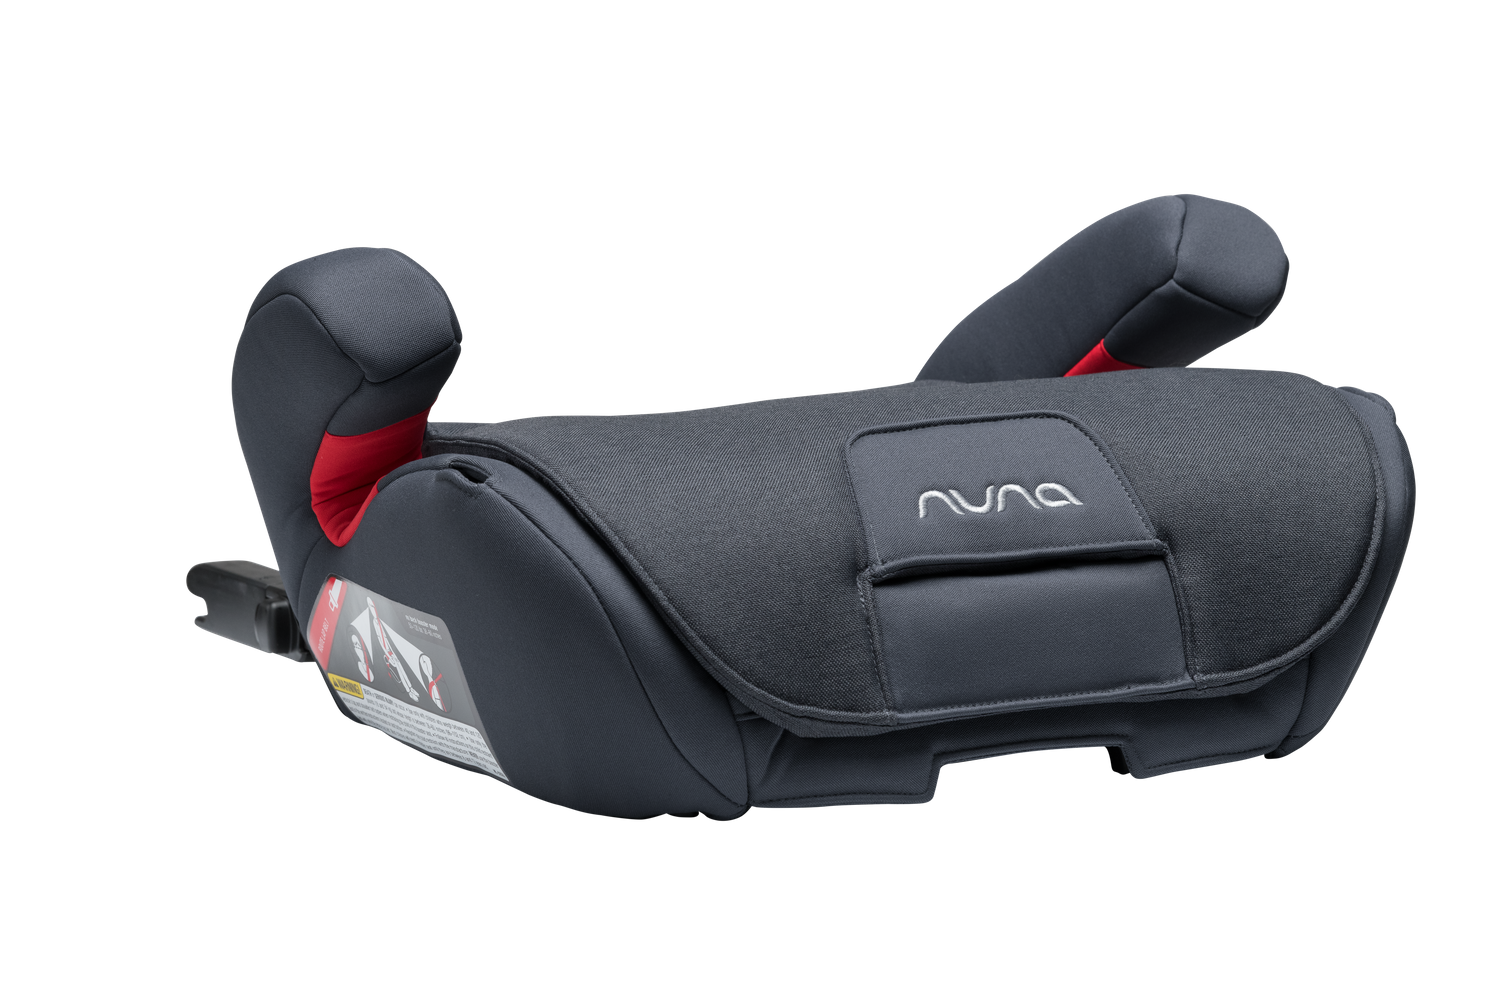 NUNA AACE 2-in-1 Booster Car Seat No Back Angle - Lake | ANB Baby